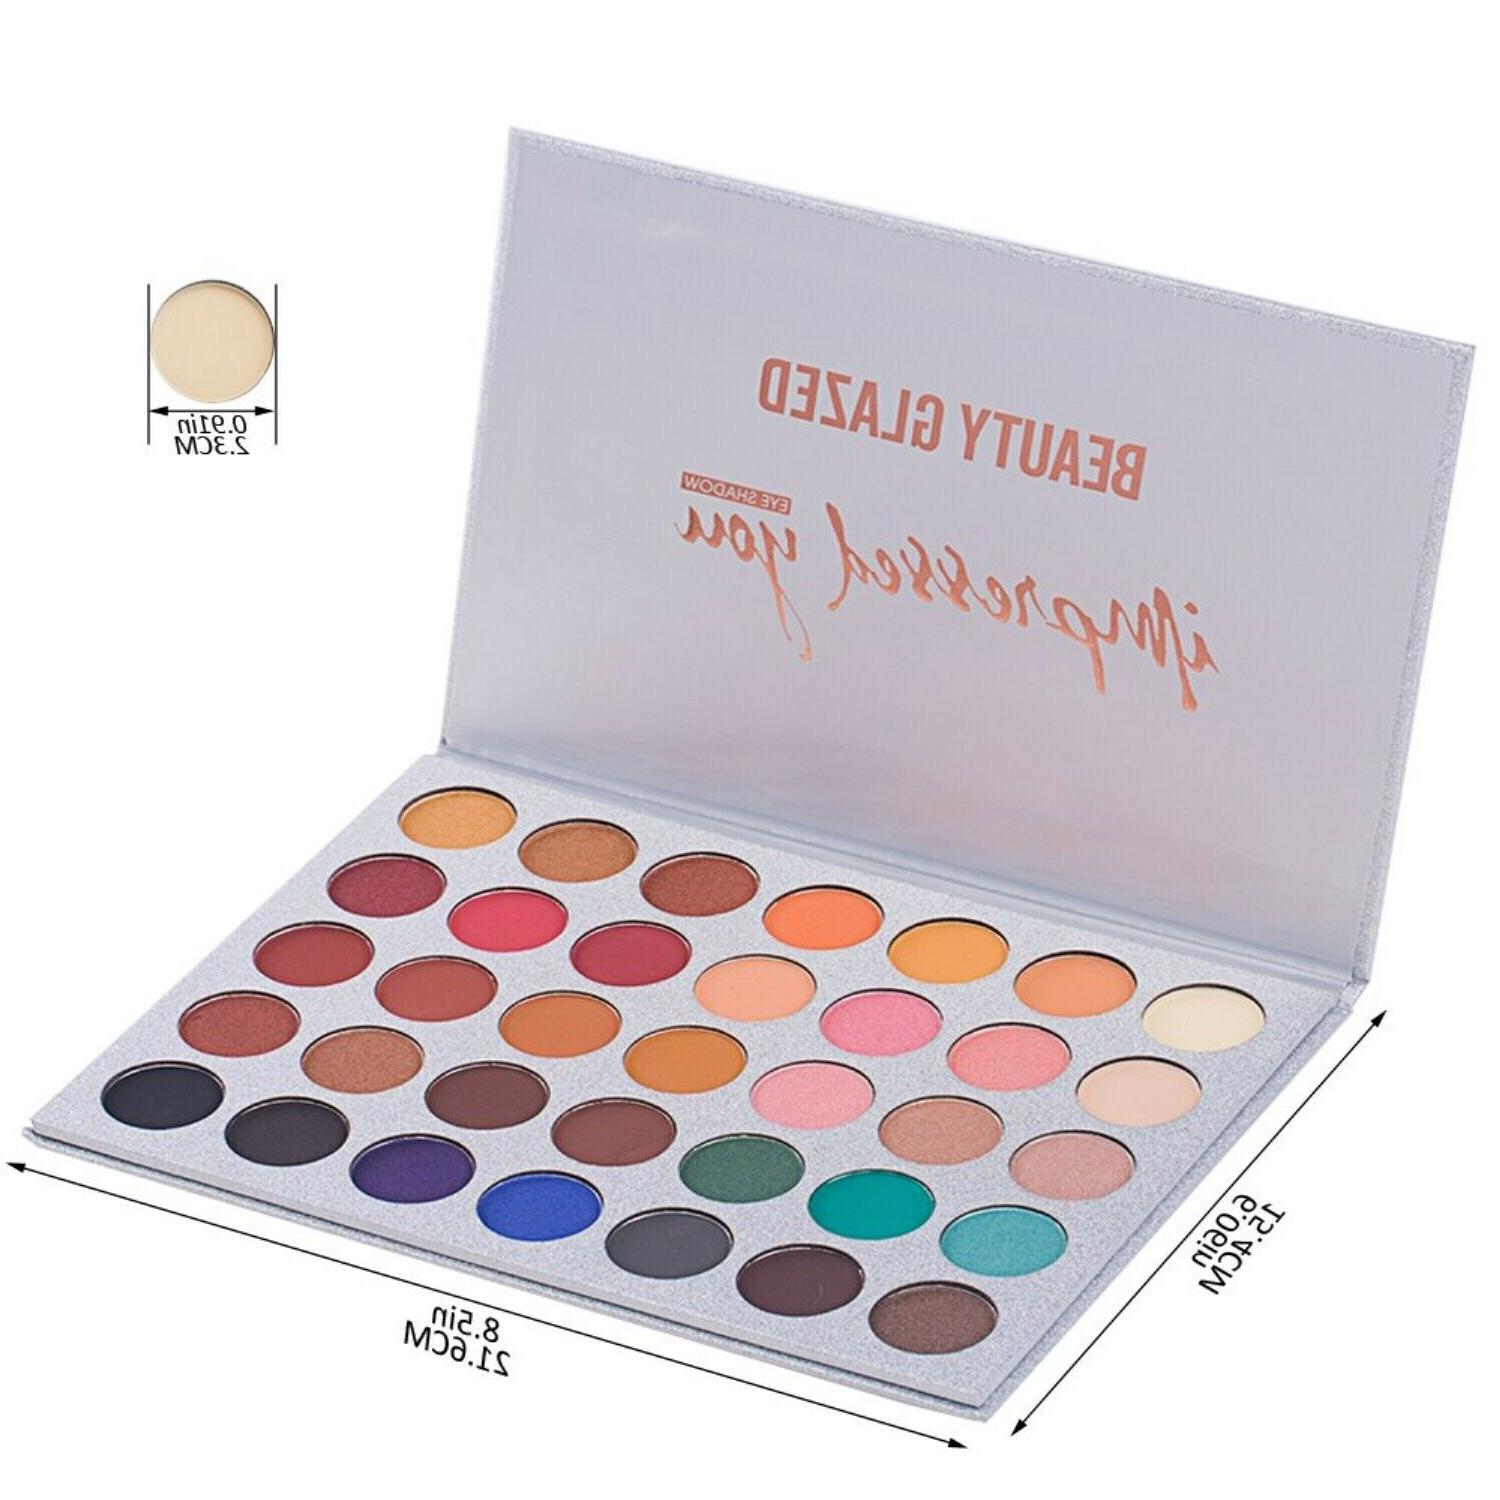 Limited Edition Jaclyn x Morphe Eye shadow Palette Brushes